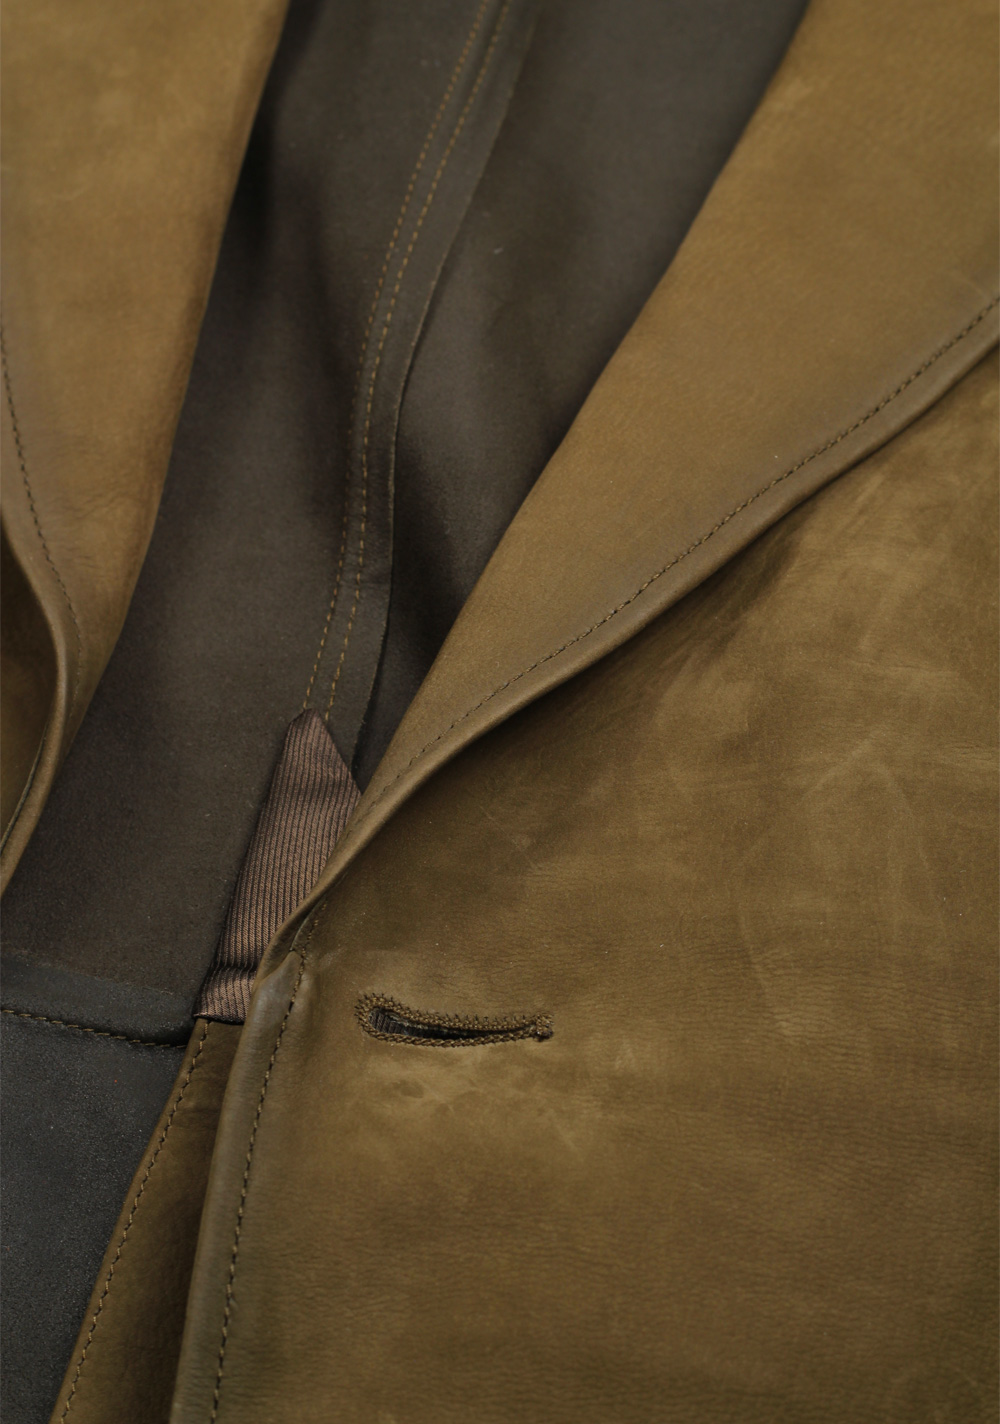 TOM FORD Cashmere Sartorial Leather Suede Jacket Coat | Costume Limité